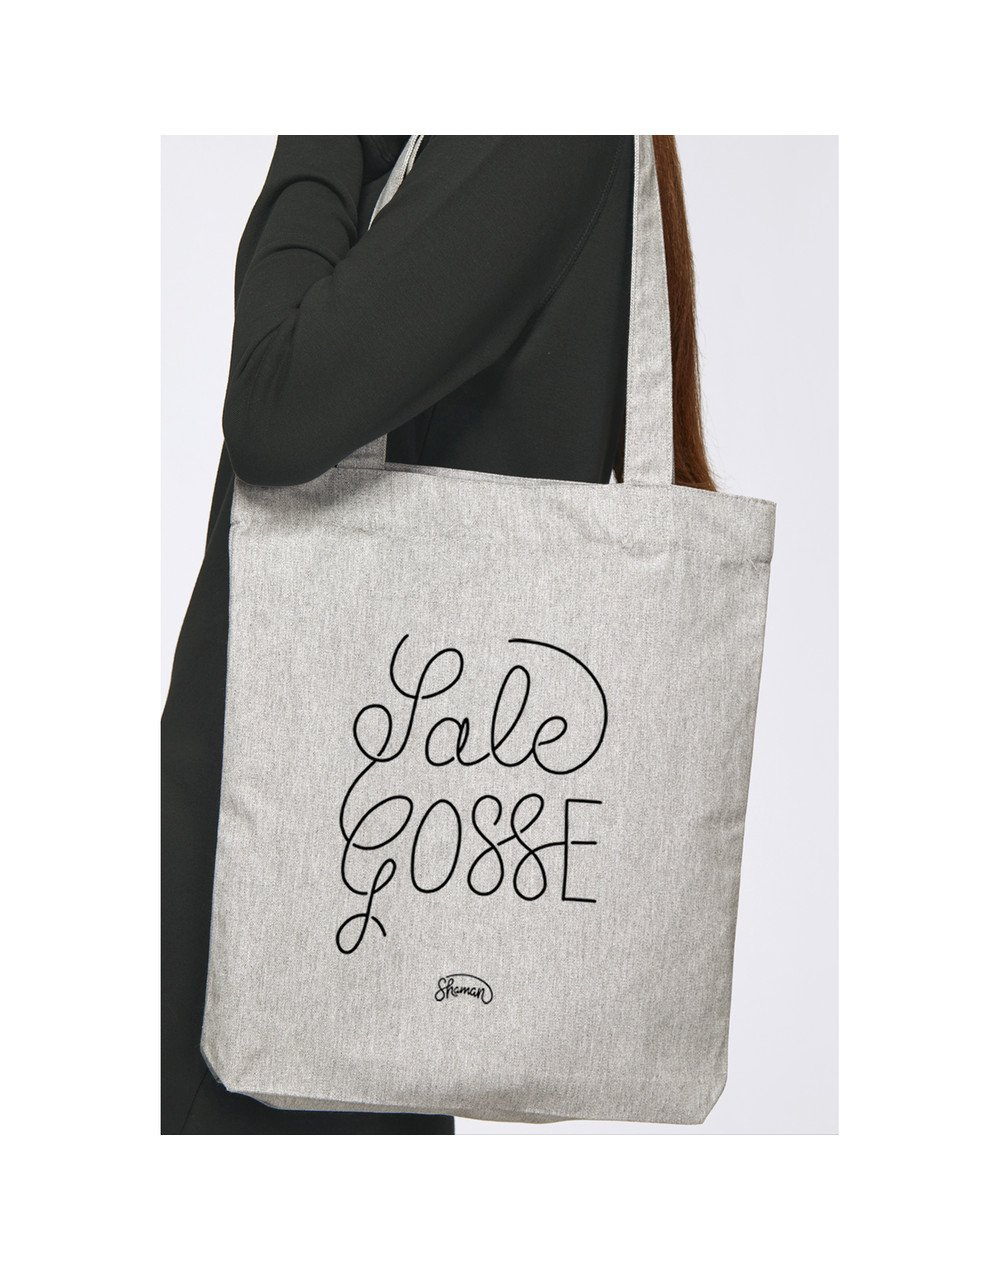 "Tote Bag ""Sale gosse"""